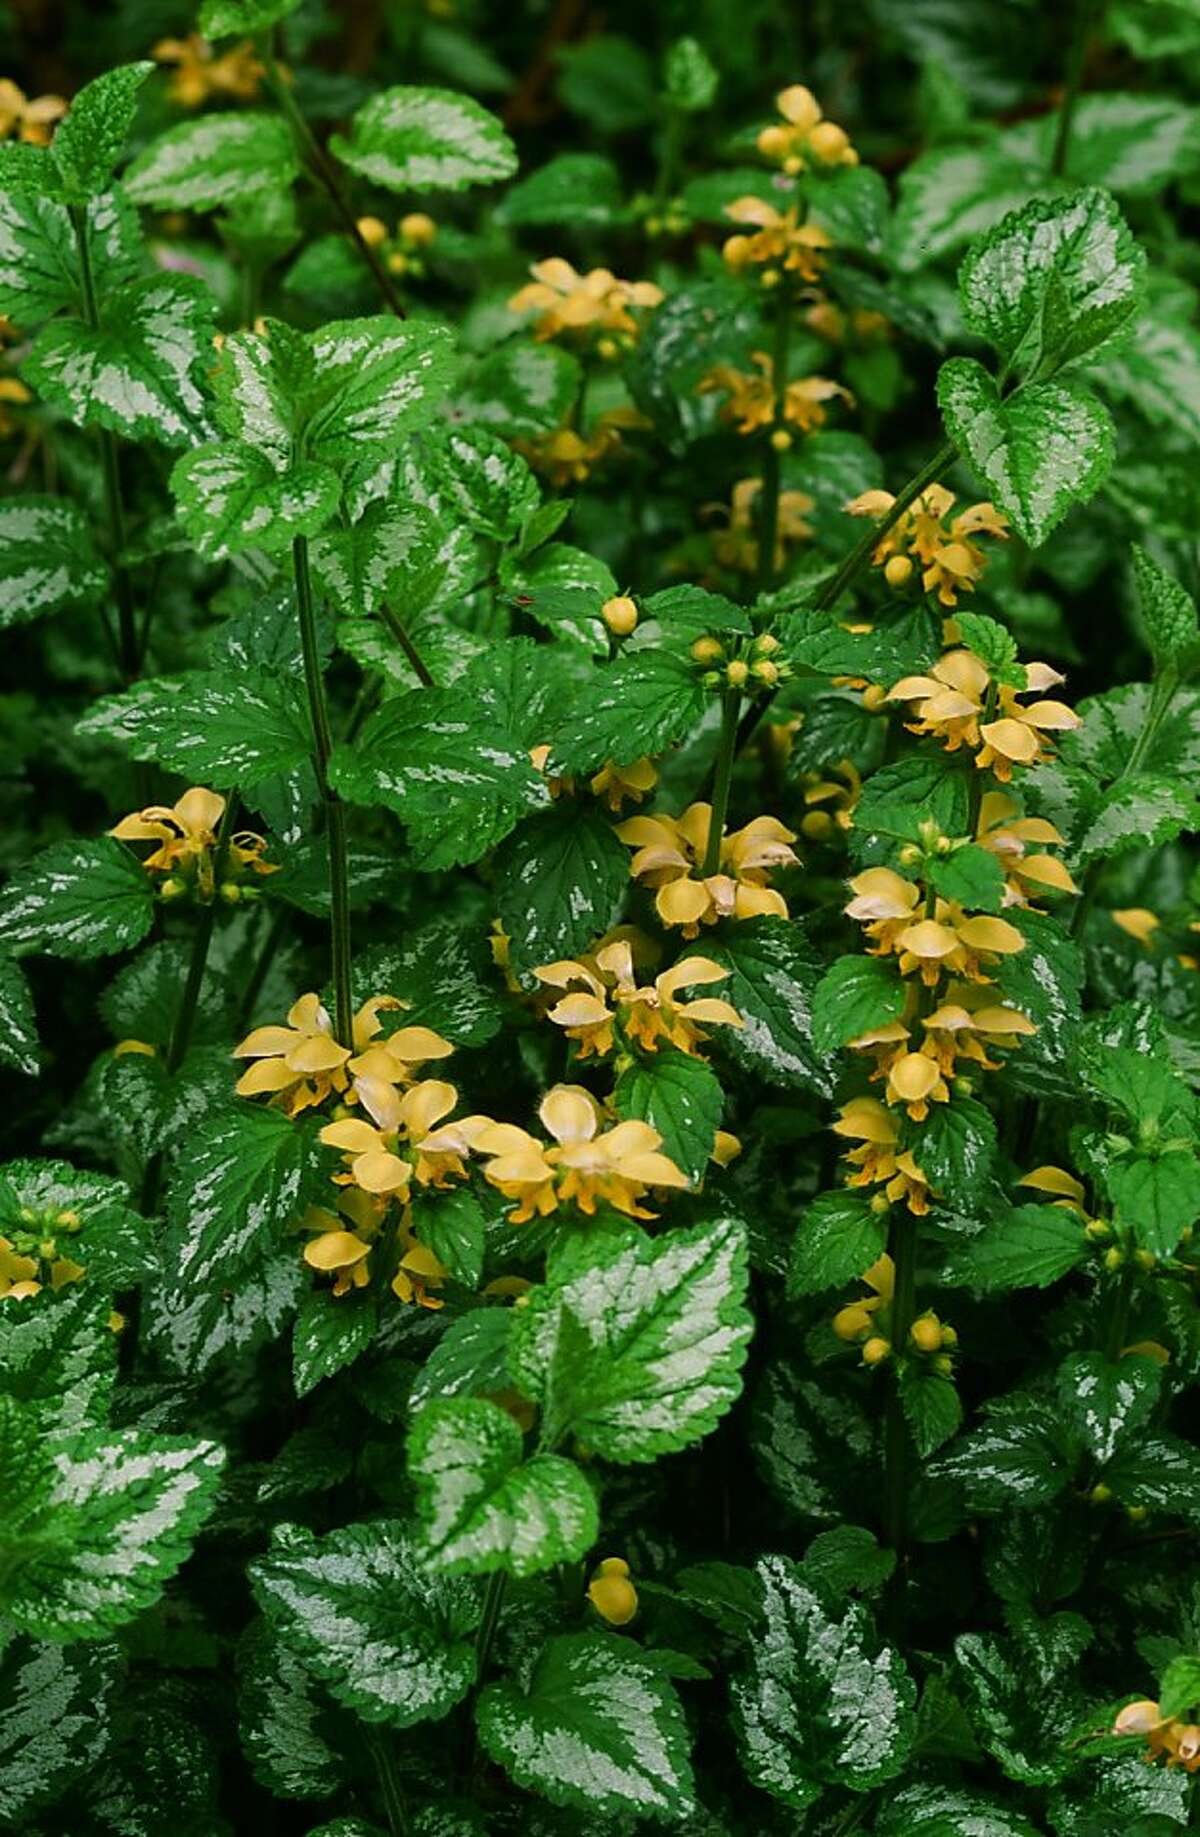 A creeping and trailing groundcover, yellow archangel's main attraction is the flash of silver on its leaves. The clear yellow flowers have a short season.